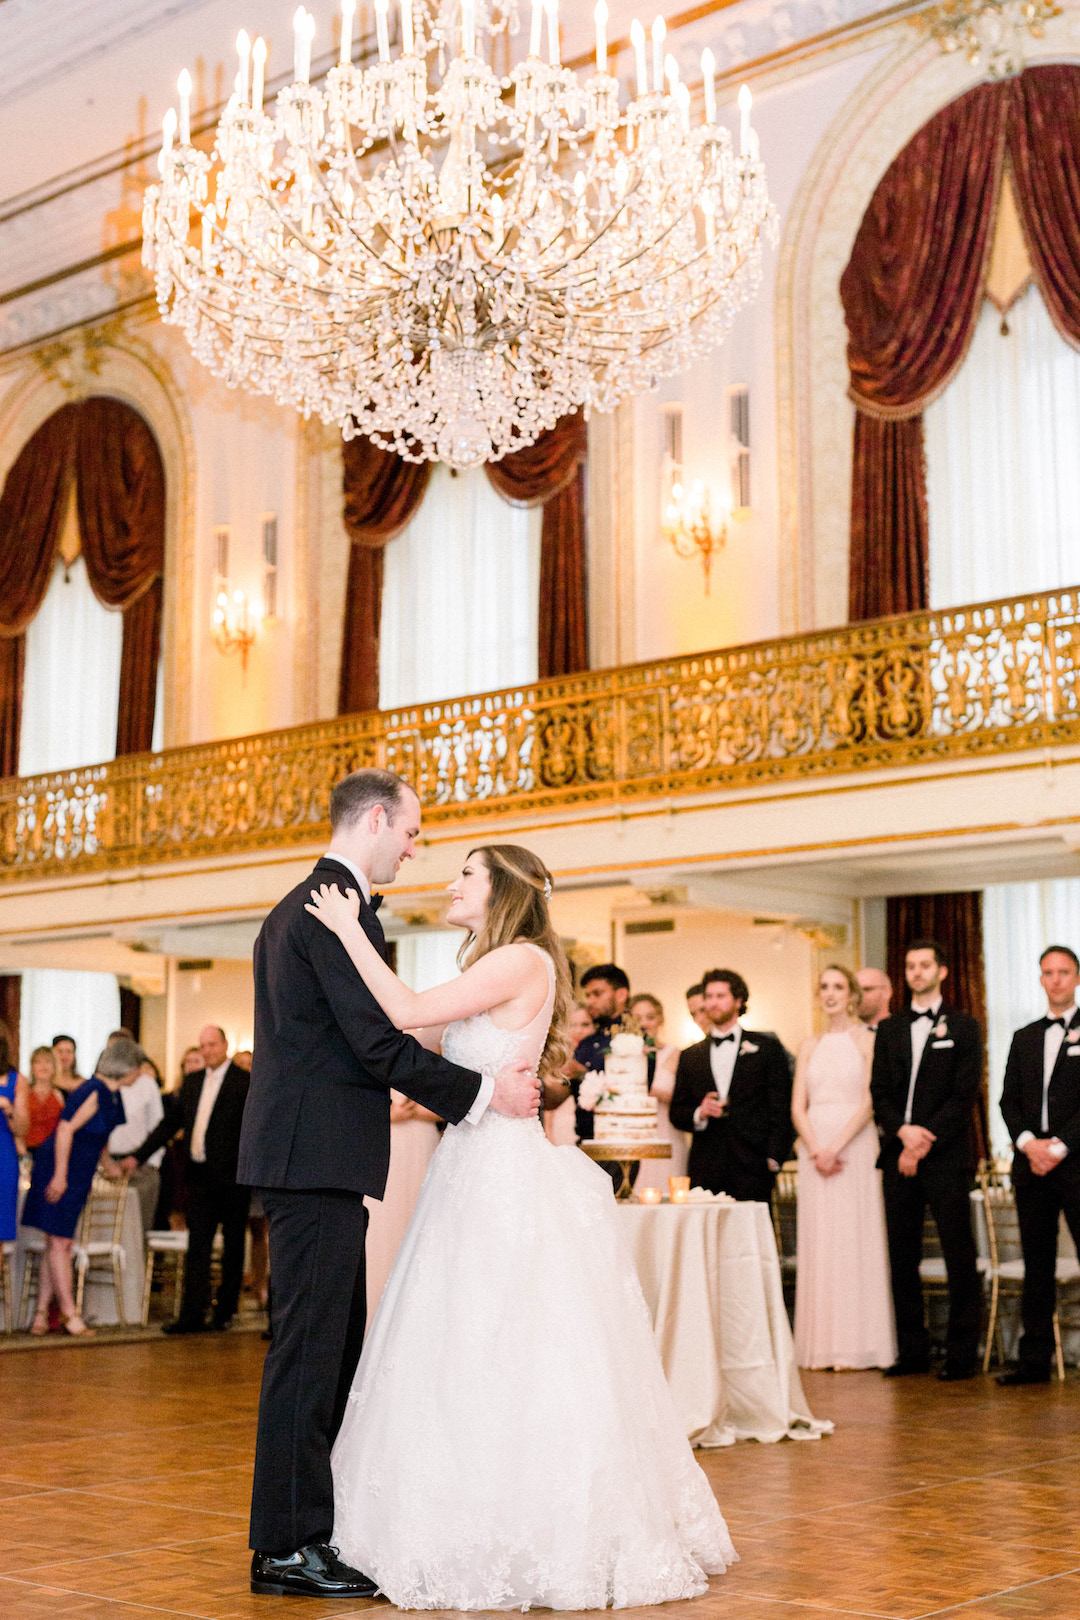 Bride and groom's first dance: Romantic Fairytale wedding at the Omni William Penn in Pittsburgh, PA planned by Exhale Events. Find more wedding inspiration at exhale-events.com!